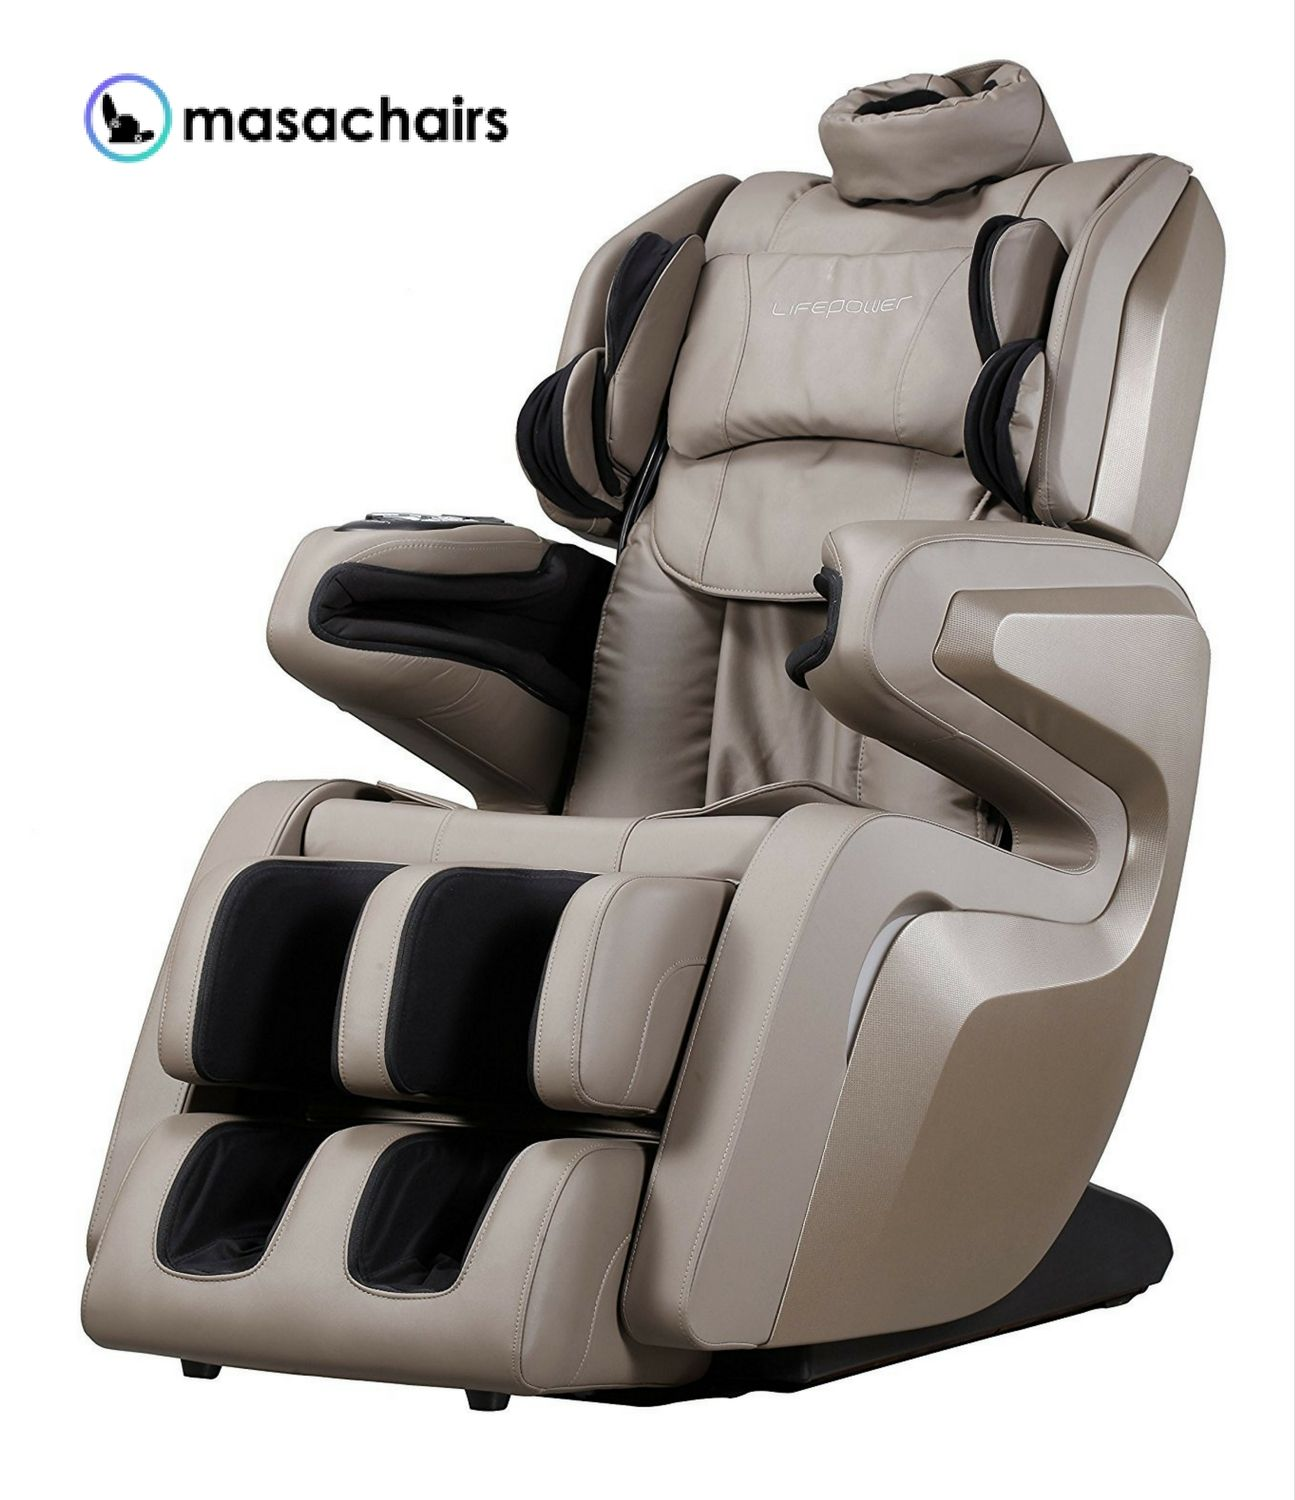 Fujita KN9005 Massage Chair Review Genius 3D Full Body